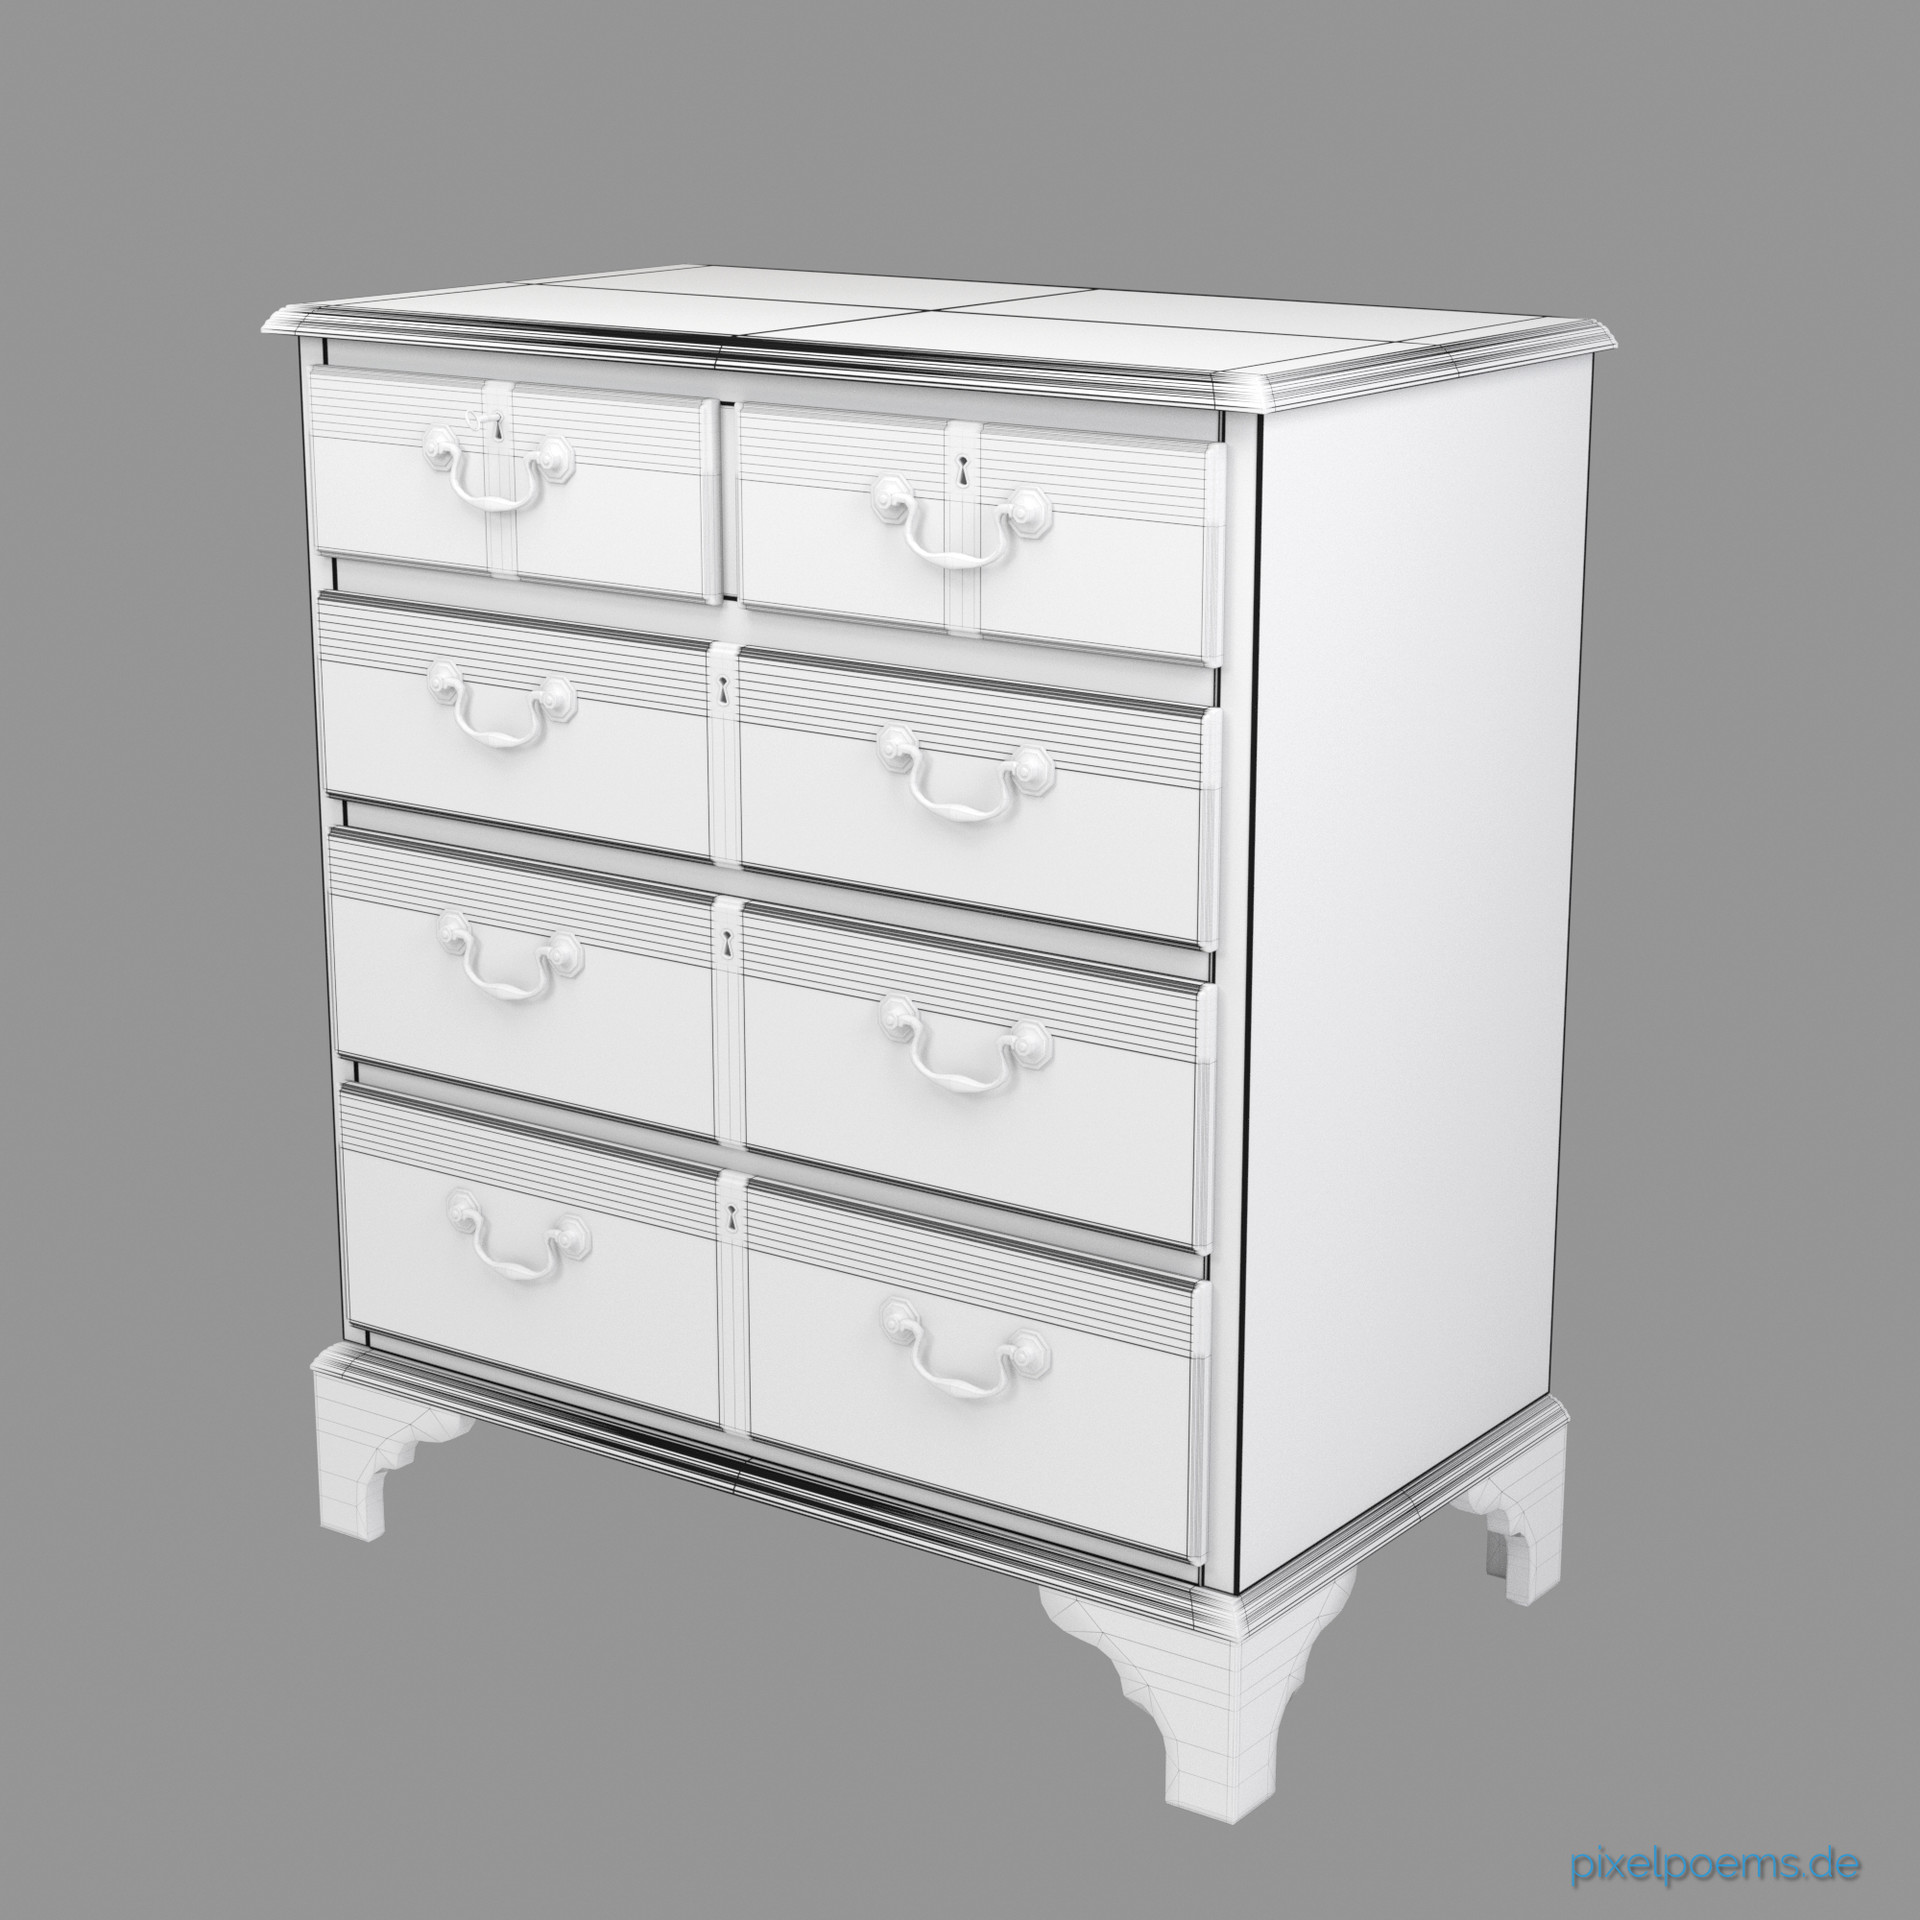 Karl andreas gross mahagony chest of drawers webversion 09